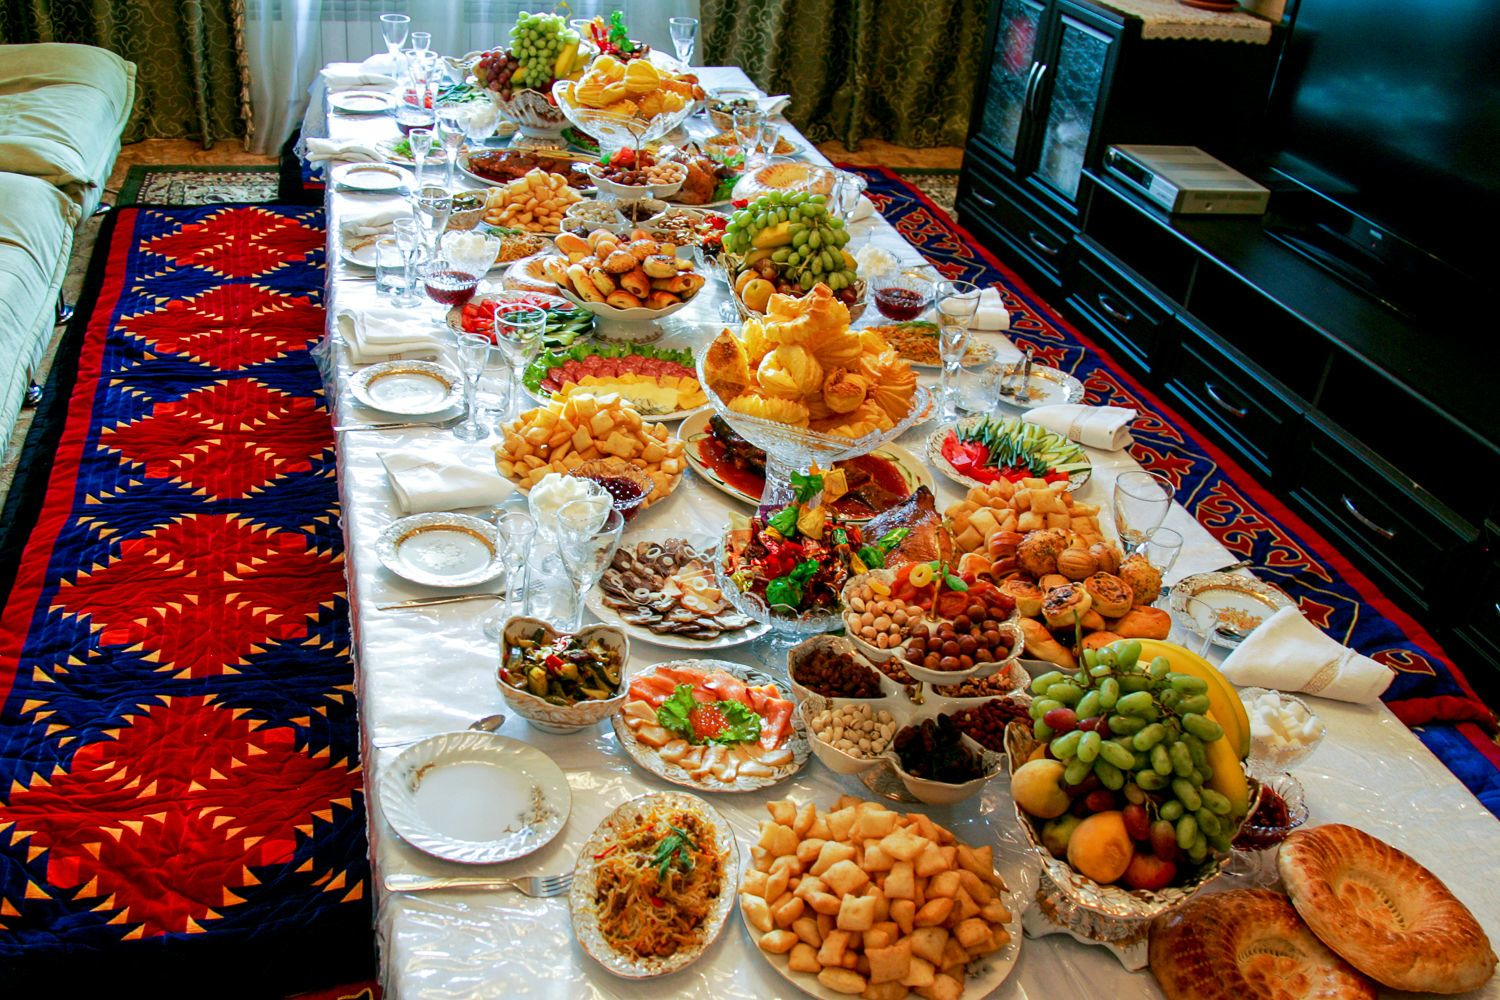 Table Snack Cuisine Central Asian Cuisine Kalpak Travel